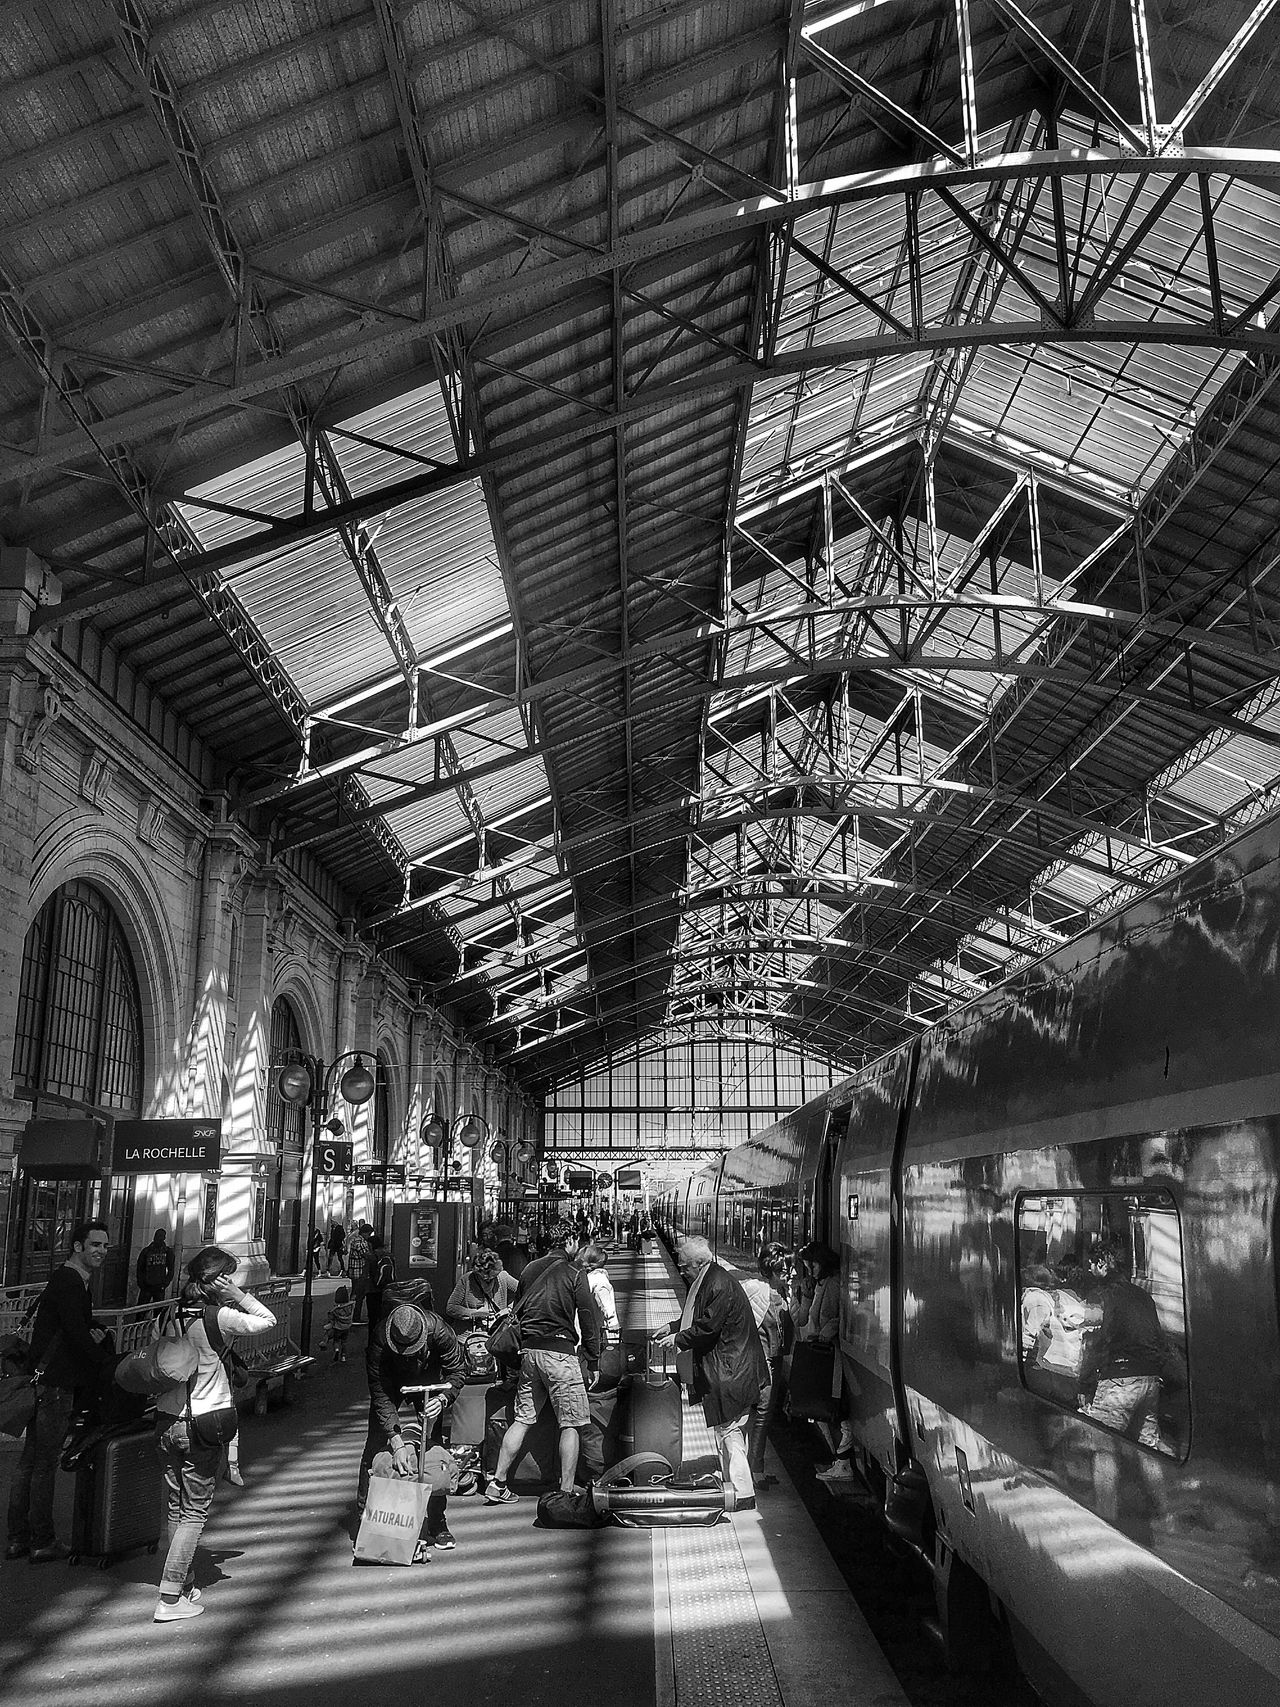 Transportation Railroad Station Built Structure Large Group Of People Public Transportation Rail Transportation Architecture Transportation Building - Type Of Building City People